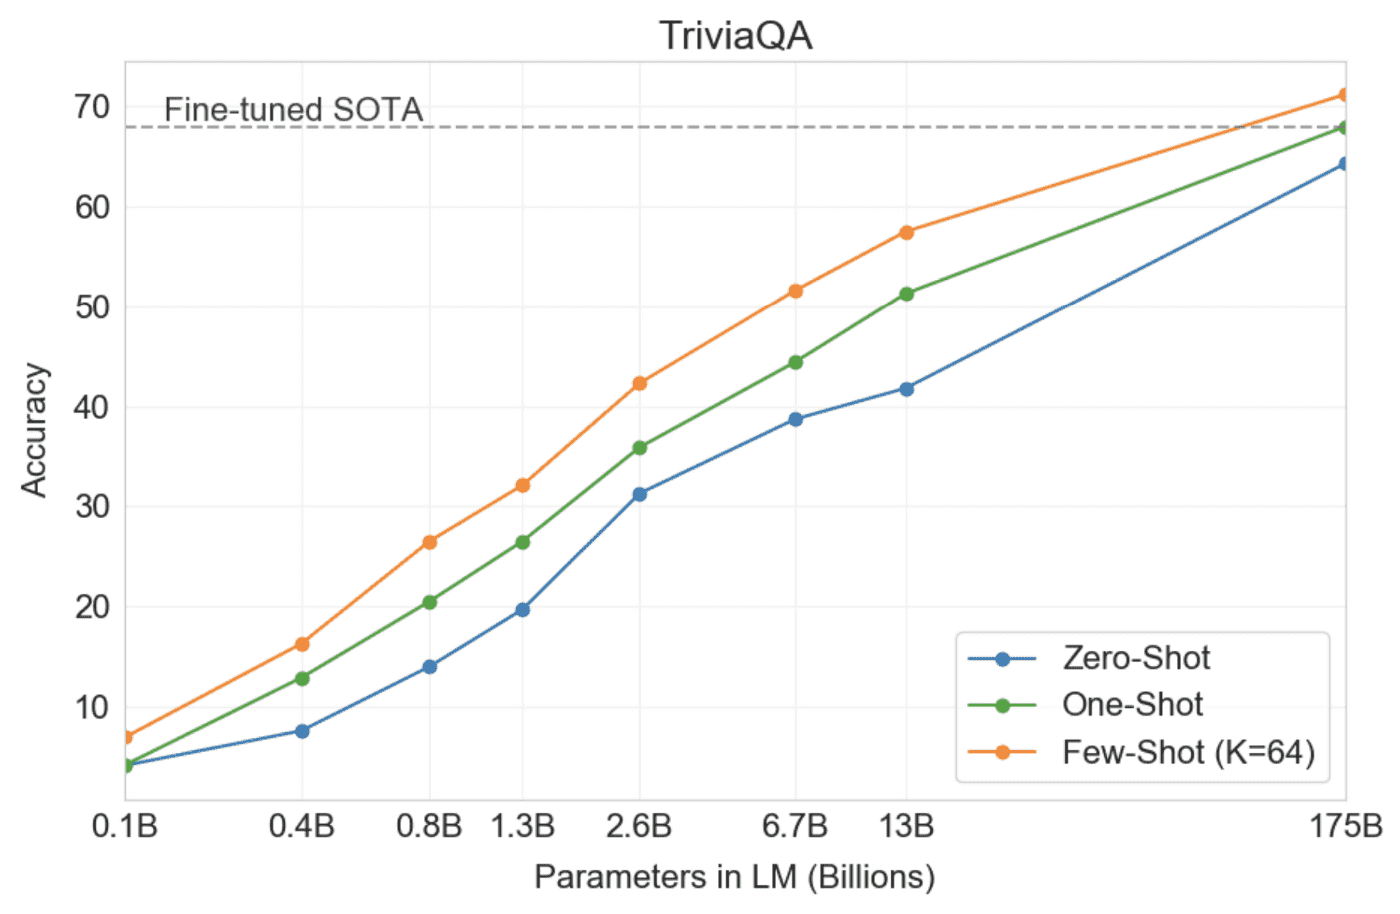 Fig-5: Performance of GPT-3 on Trivia QA for models of different sizes